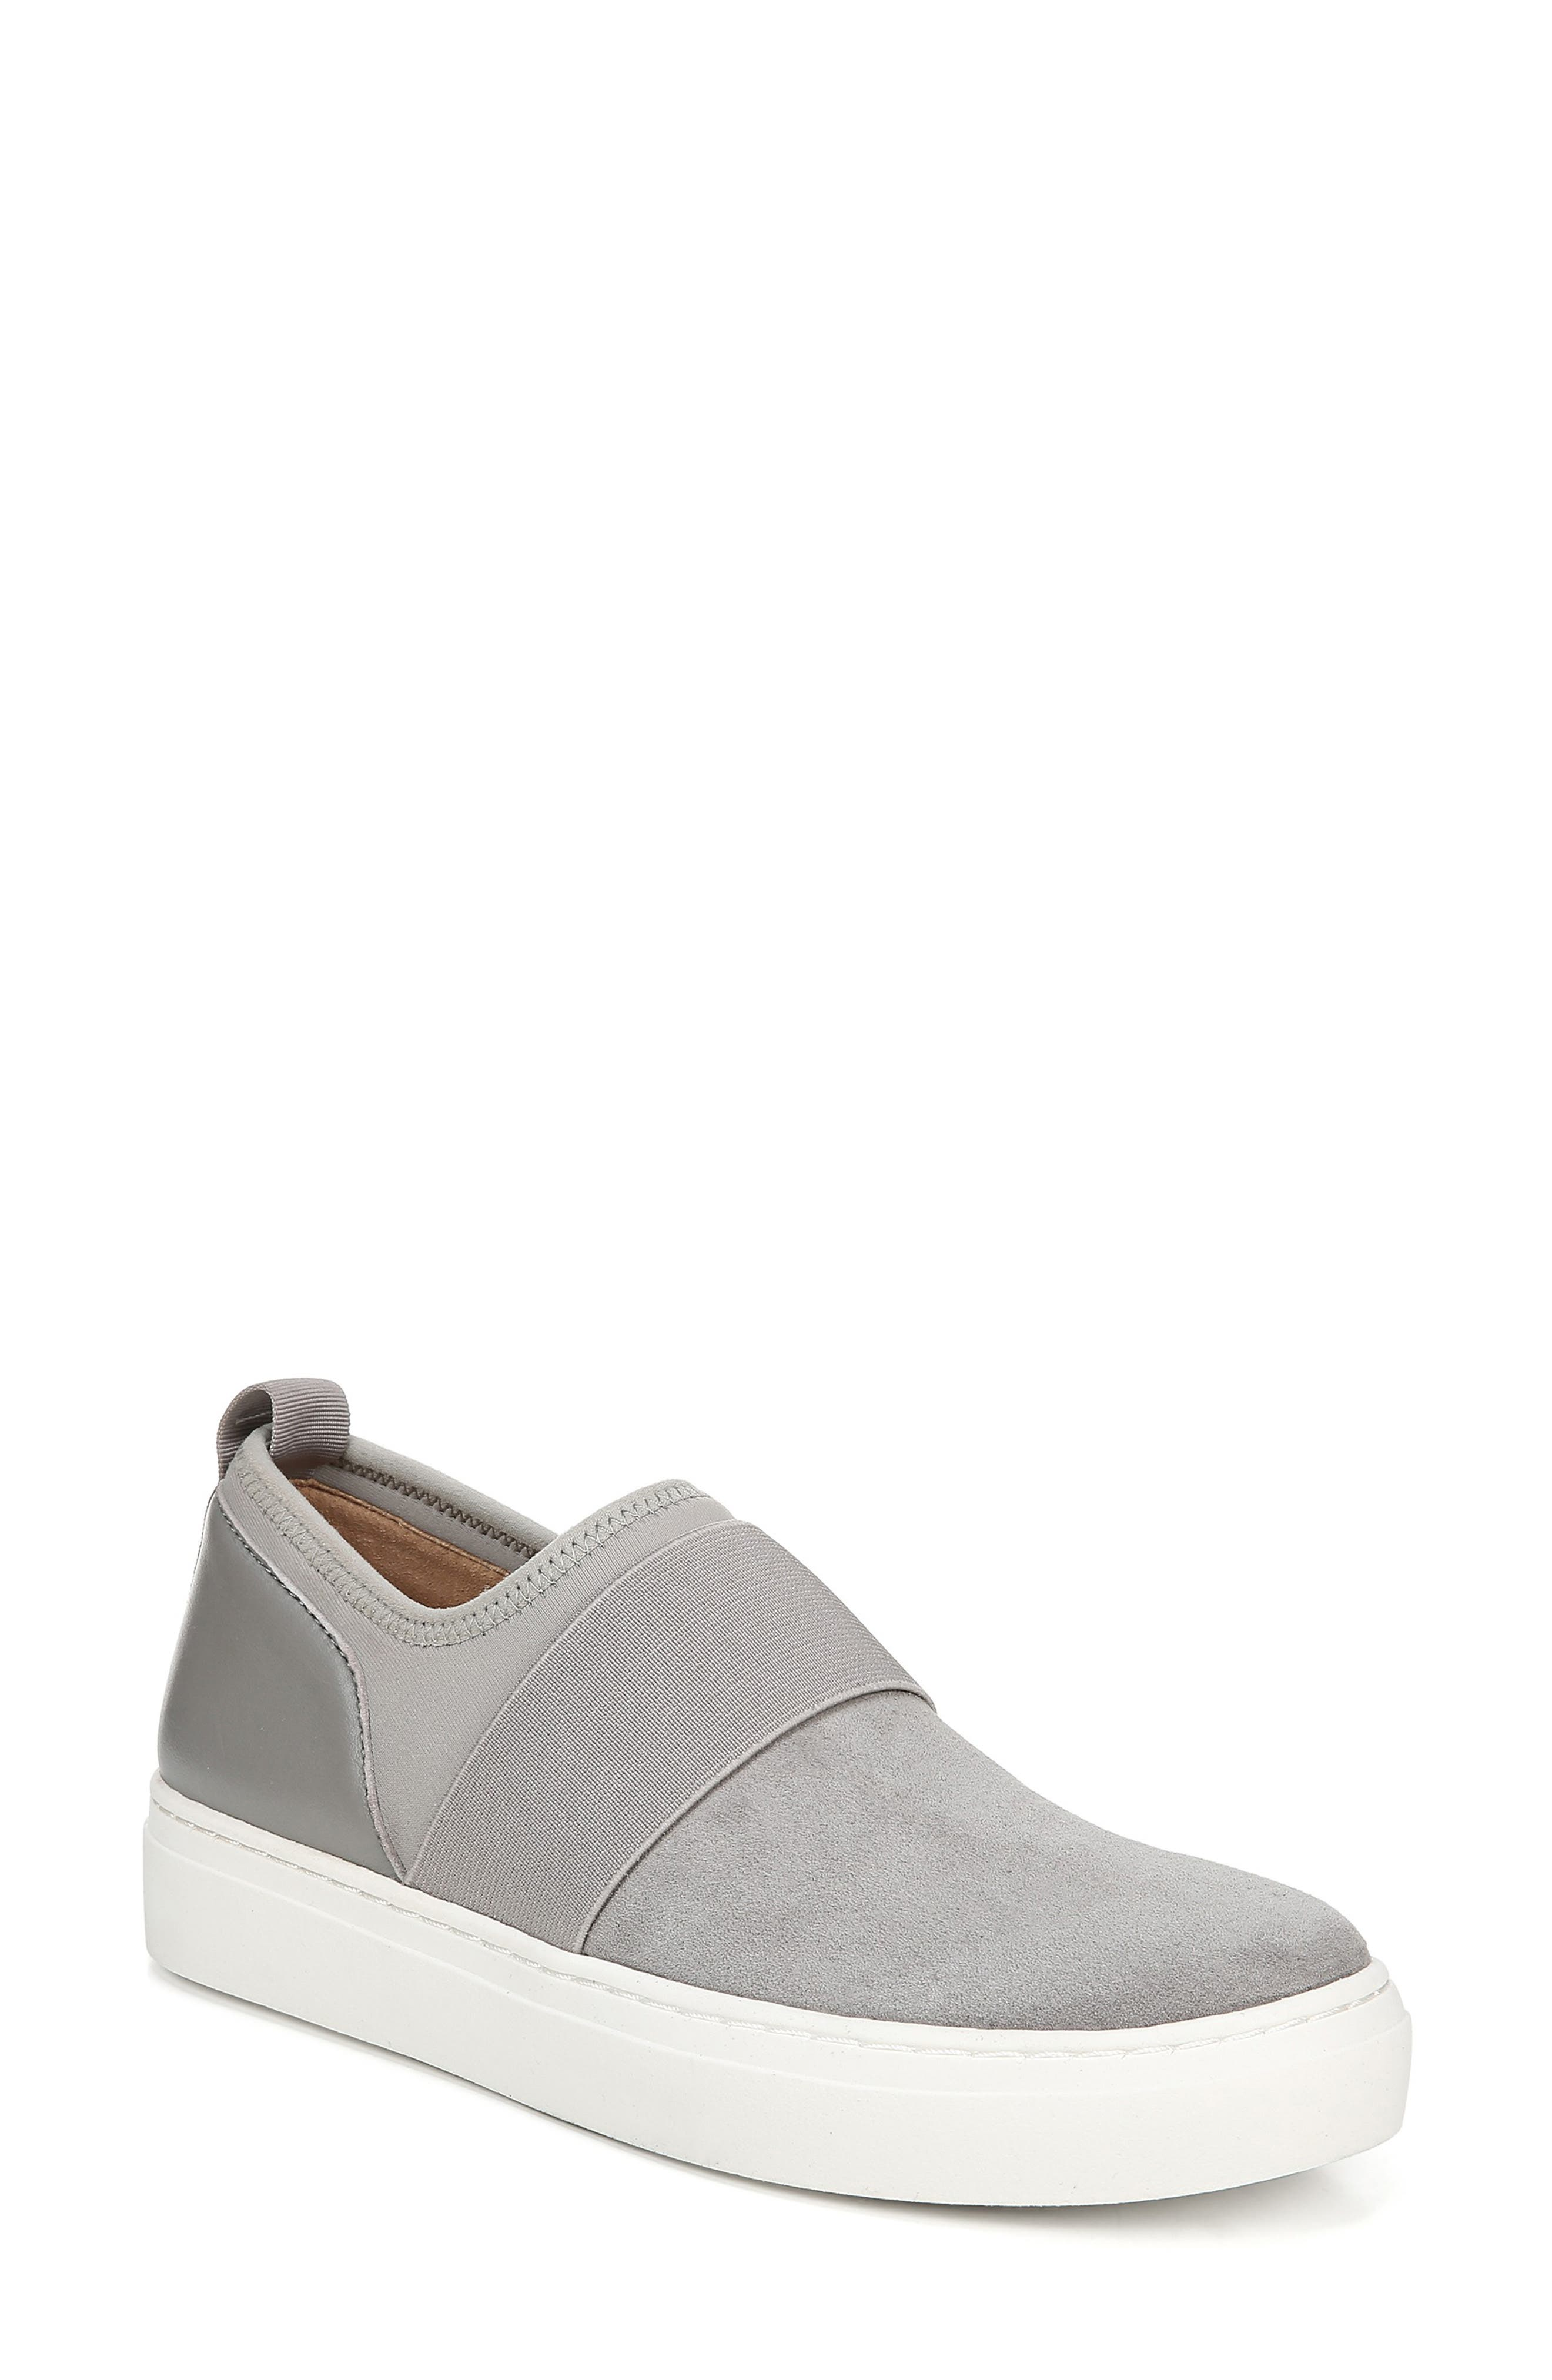 Naturalizer Cassey Slip-On Sneaker, Grey